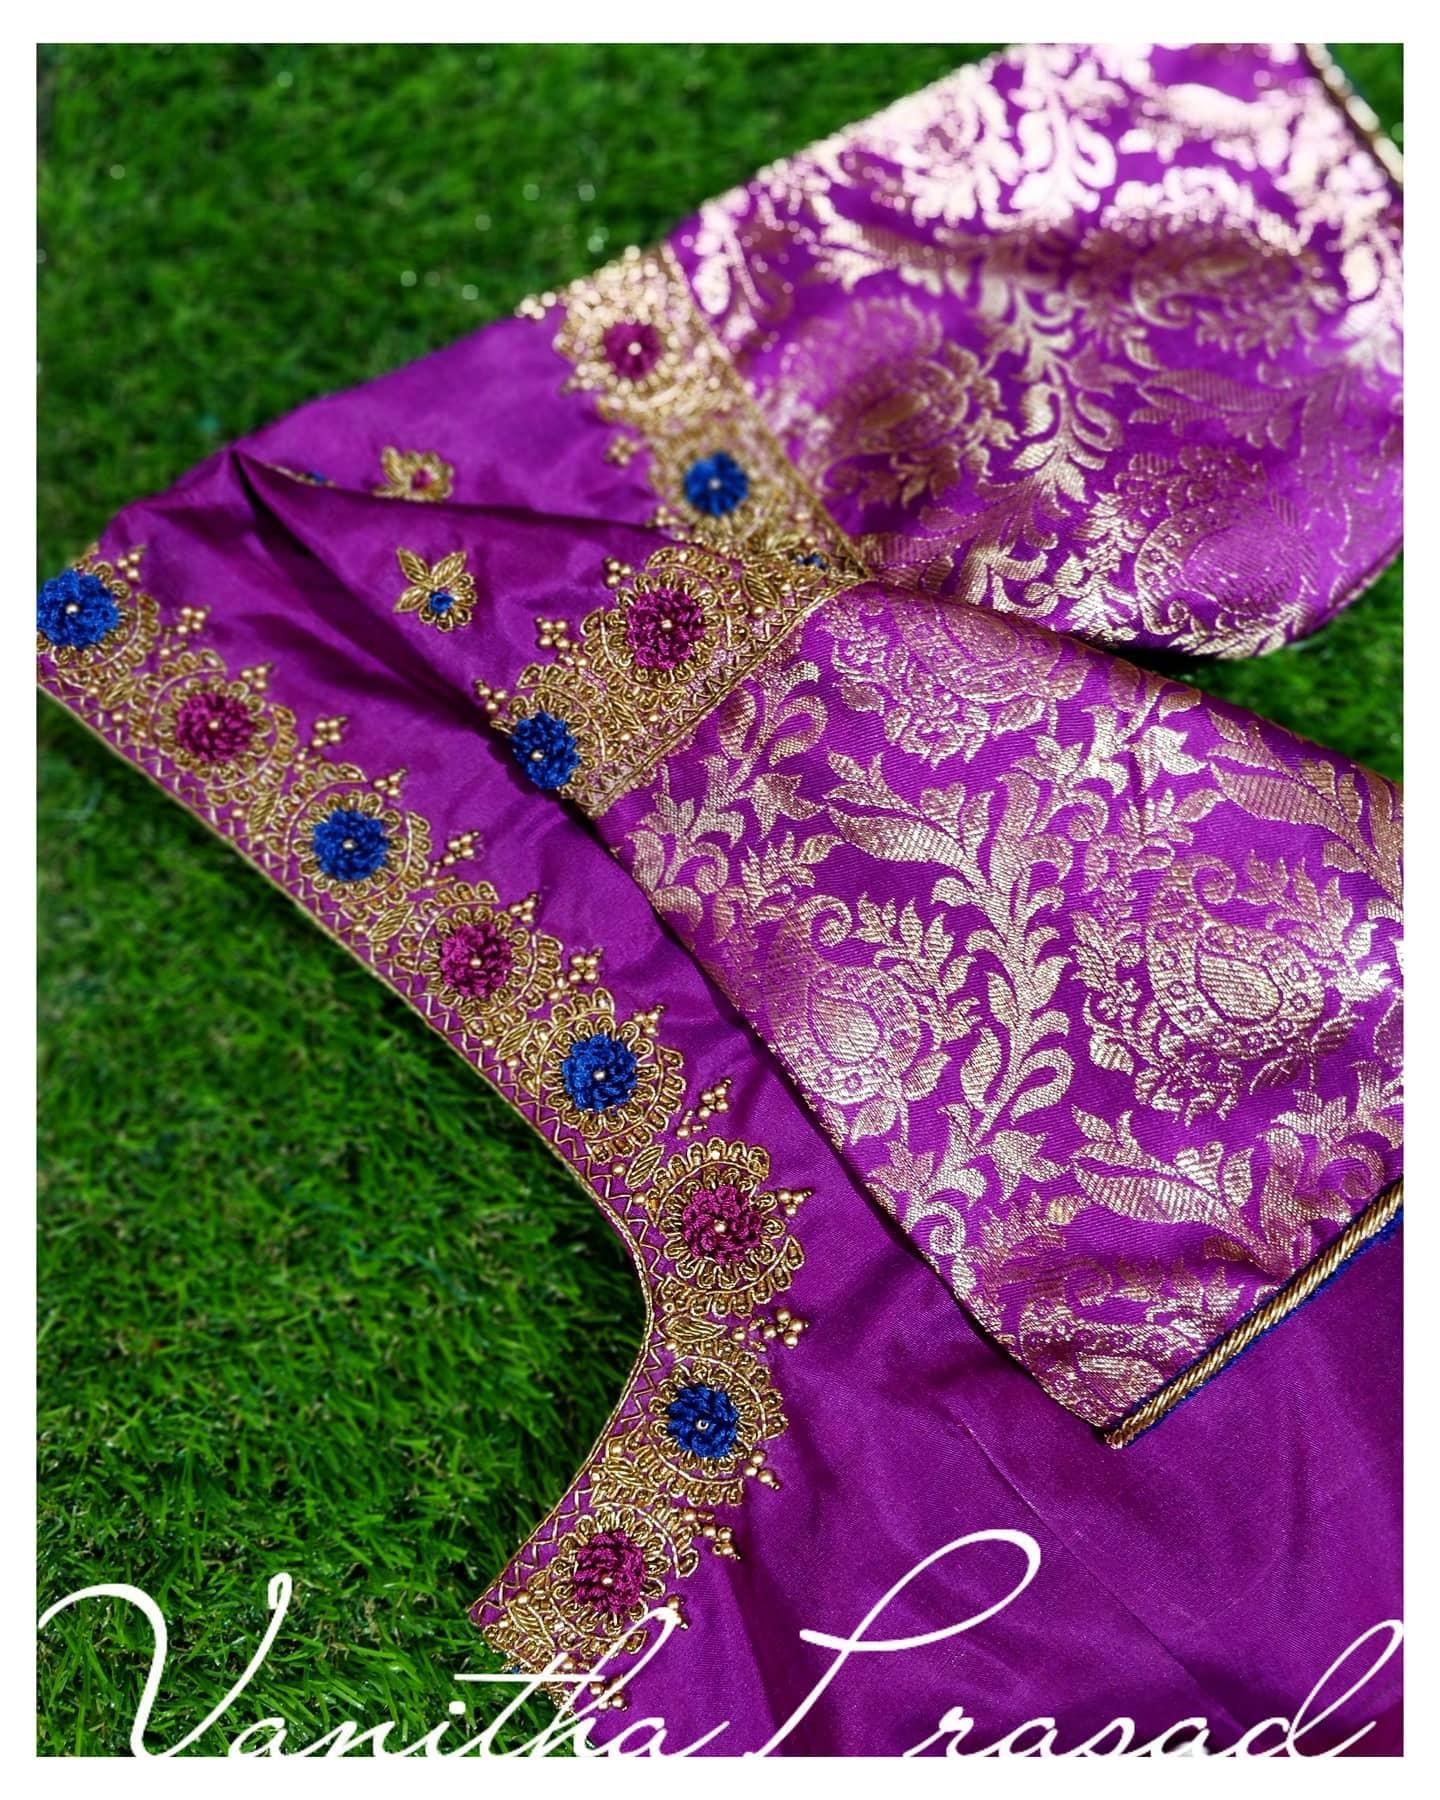 Simple and elegant blouse design. Beautiful purple color blouse design with floral gold thread zardosi work on on neckline and sleeves. Blouse with silver zari sleeves. 2021-06-16